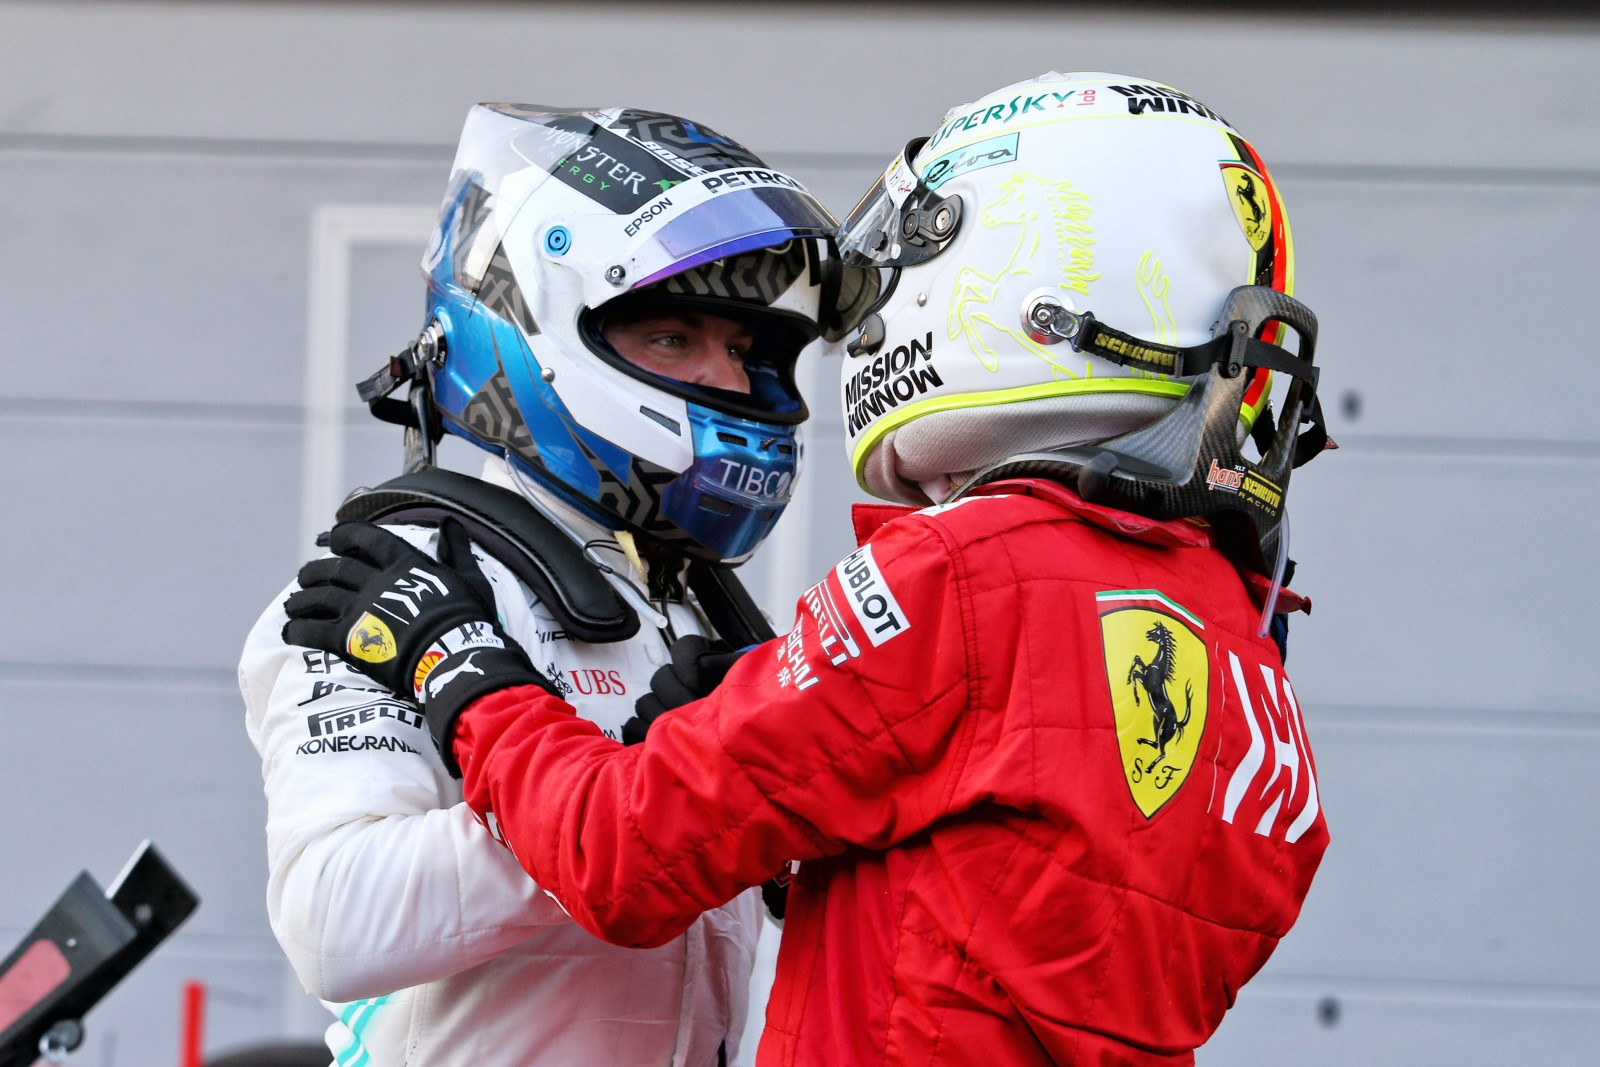 Mercedes tell Bottas the team are 'not considering' Vettel